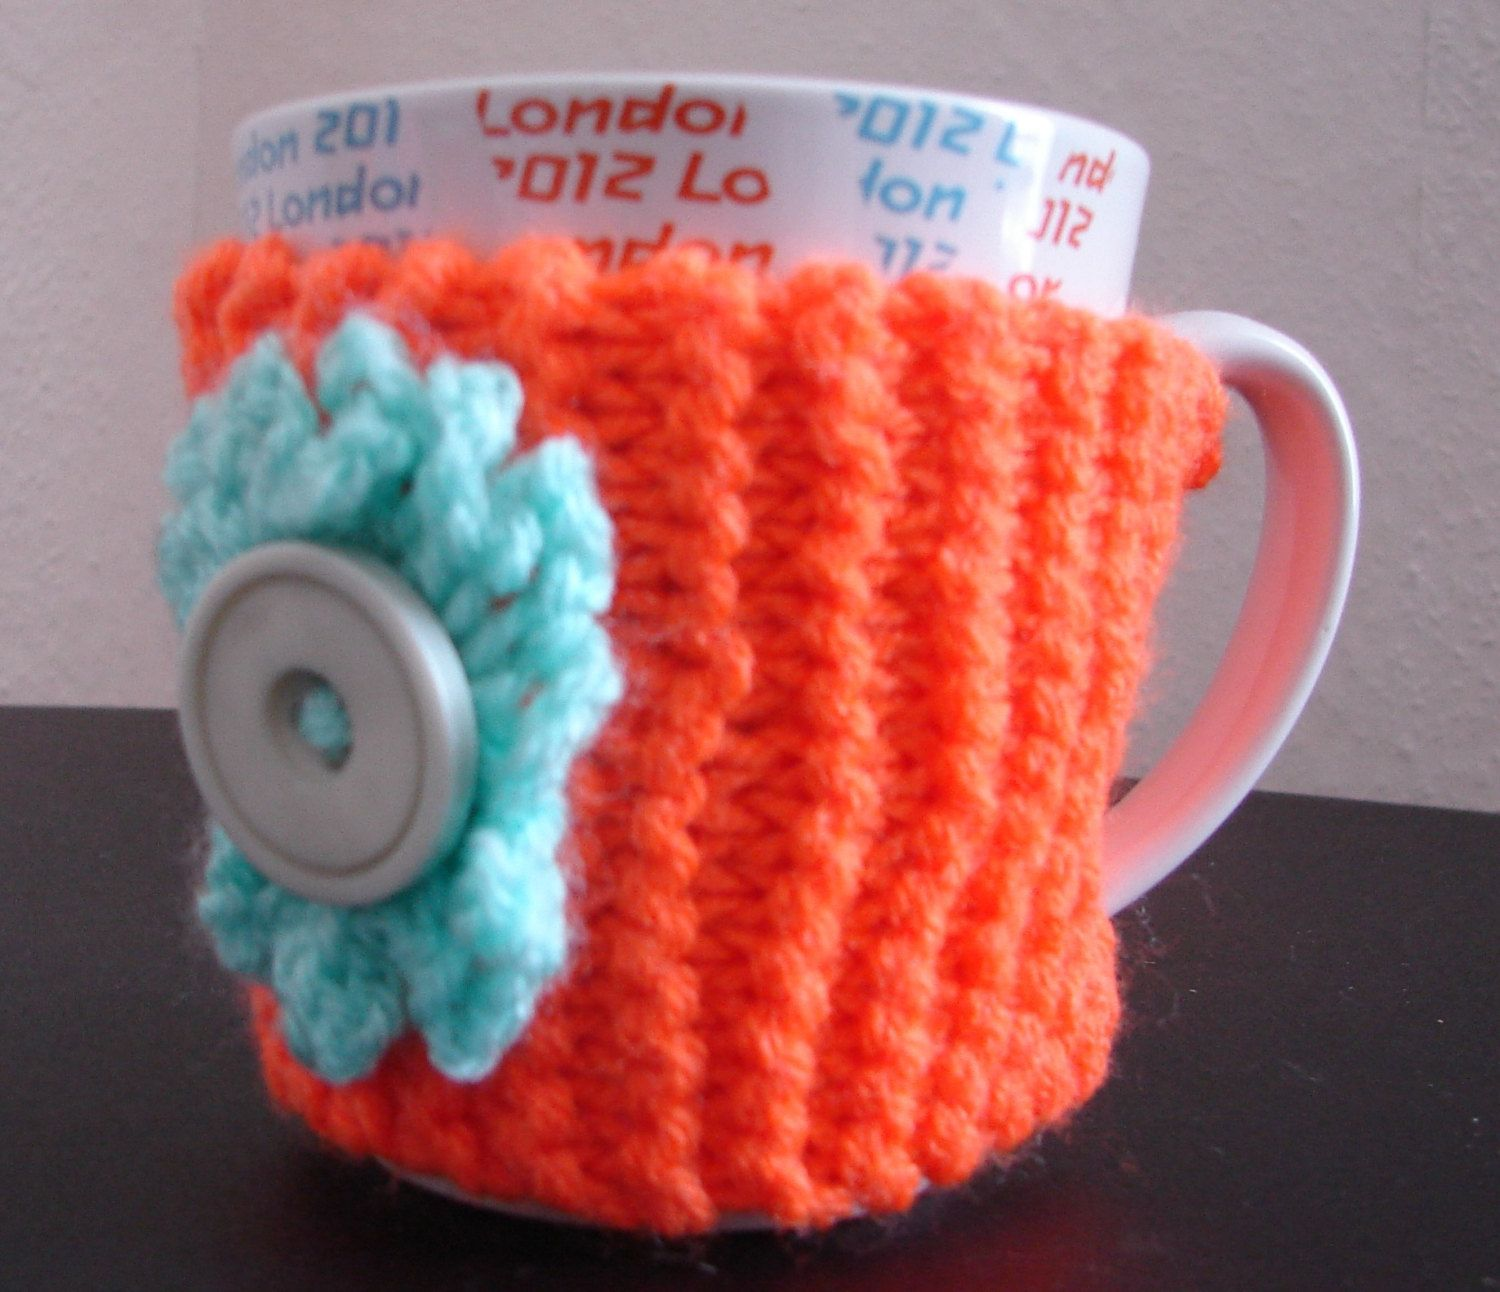 Coffee Cup Cozy - Tea Cup Cozy - Mug Cozy - Cup Cozy - Coffee Mug Cozies - Coffee Cup Warmer - Coffee Lover Gift - Coffee Cup Sweater by TeaCosyWorld on Etsy